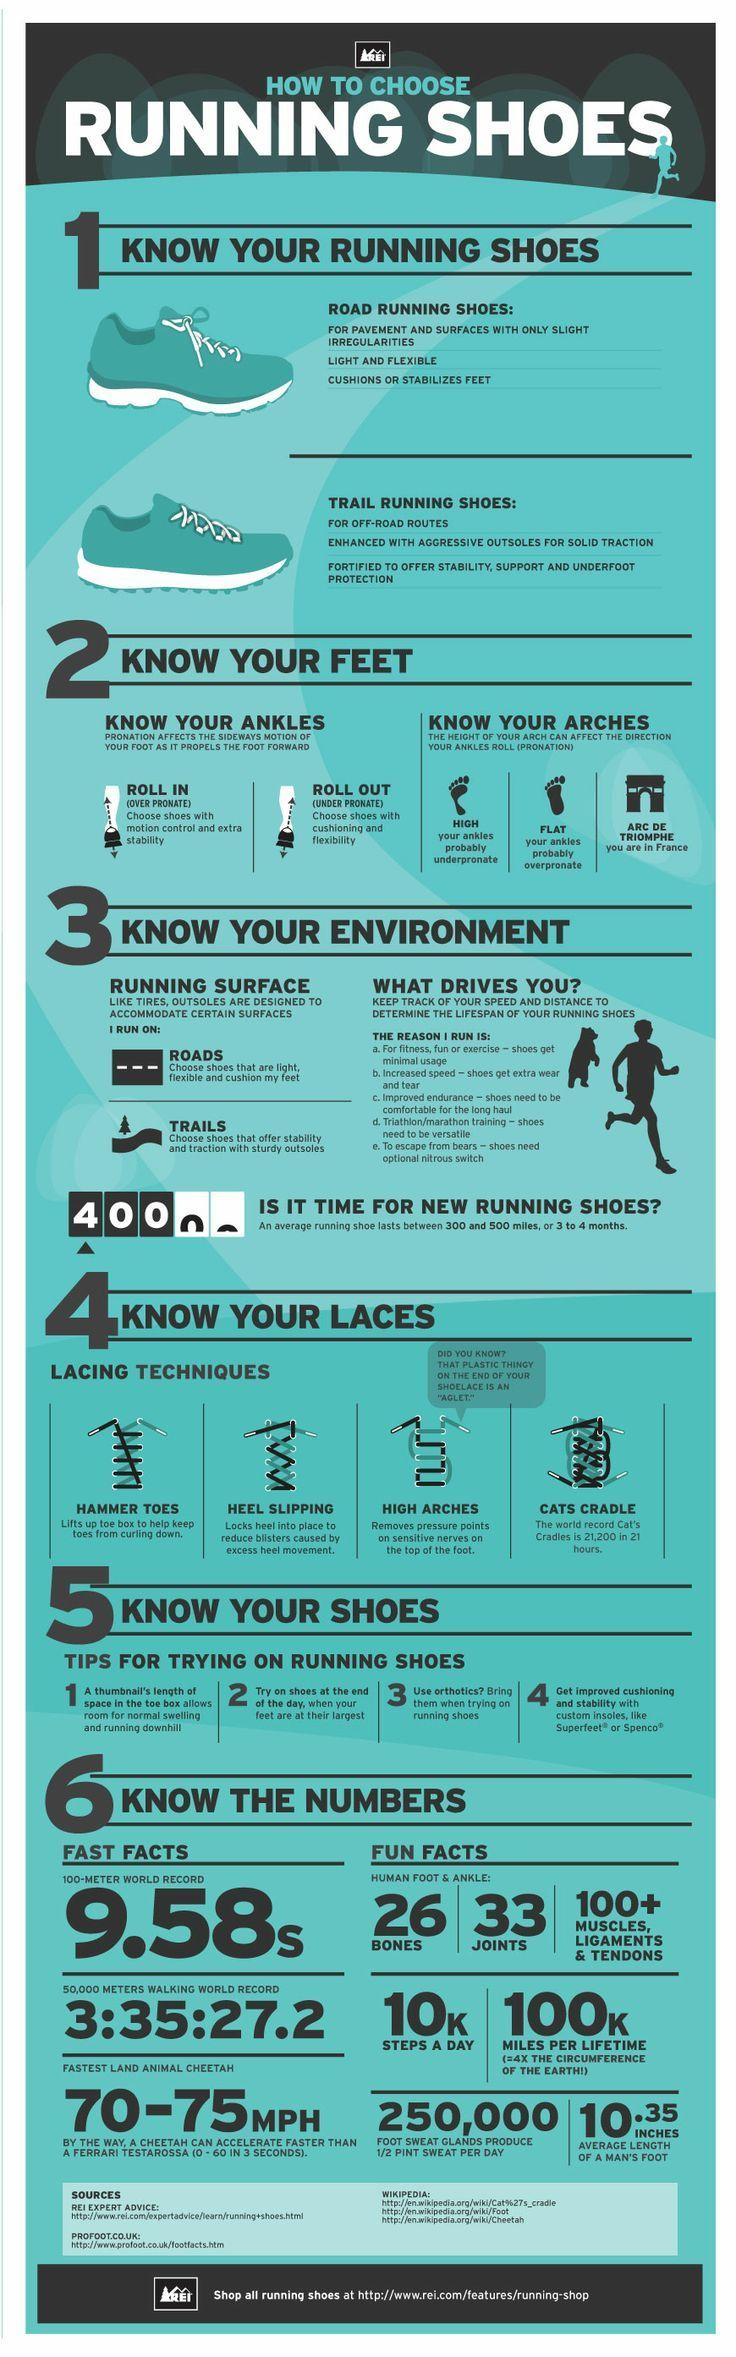 How to choose running shoes. Keep those feet happy!